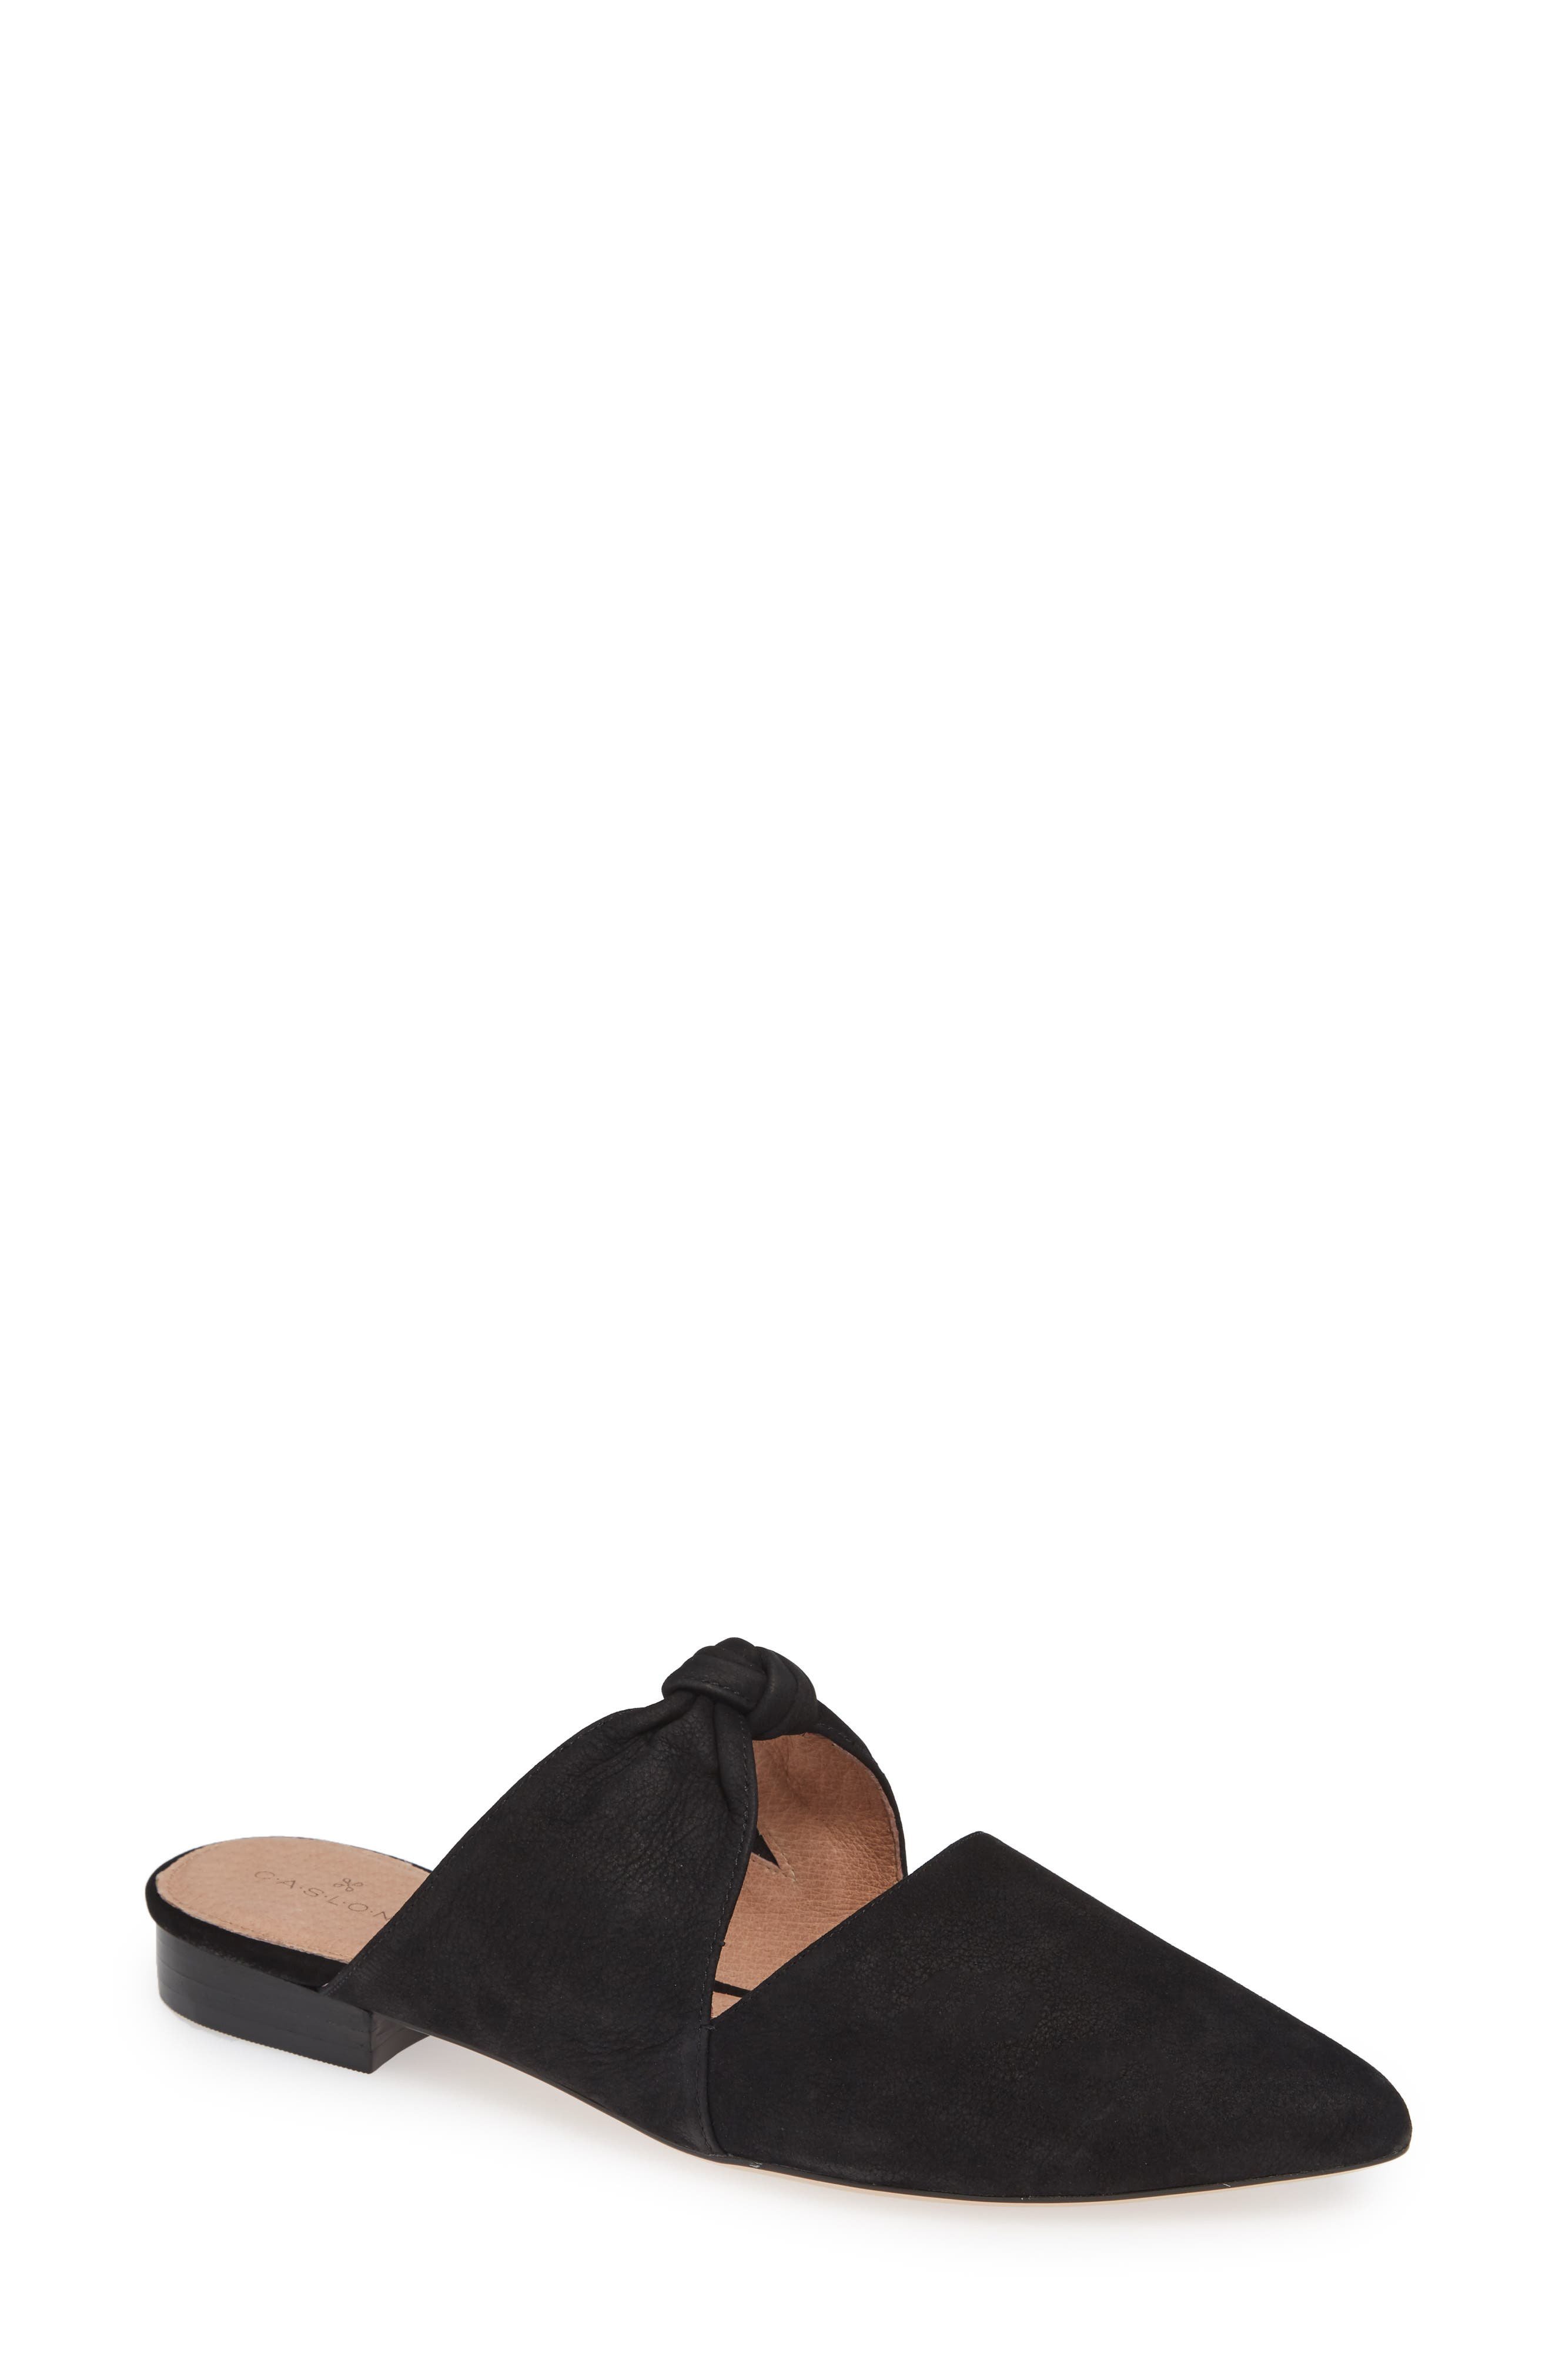 Luke Knotted Mule,                         Main,                         color, BLACK NUBUCK